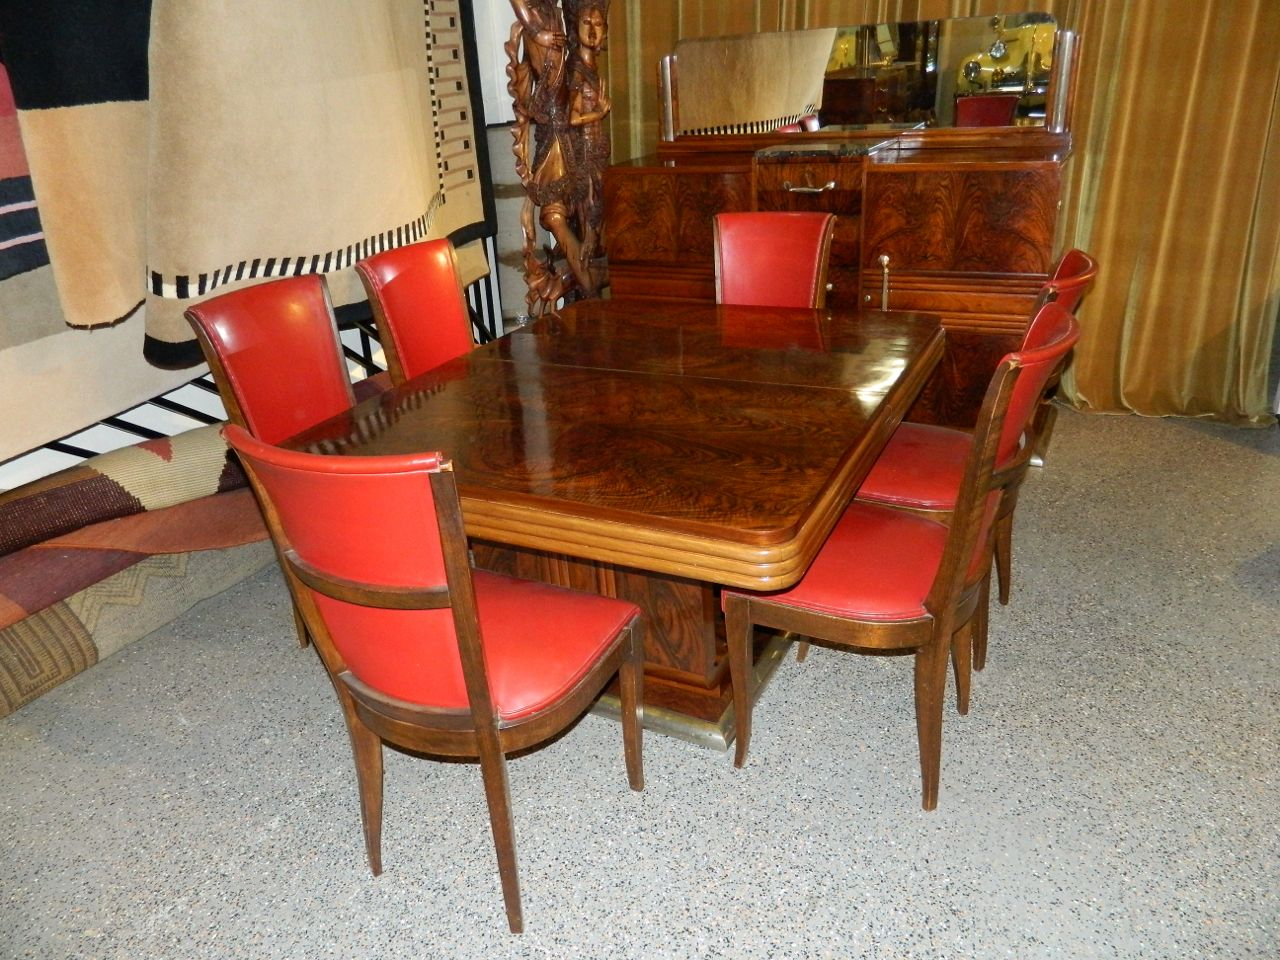 Prime Original French Art Deco Modernist Dining Table And Chairs Machost Co Dining Chair Design Ideas Machostcouk